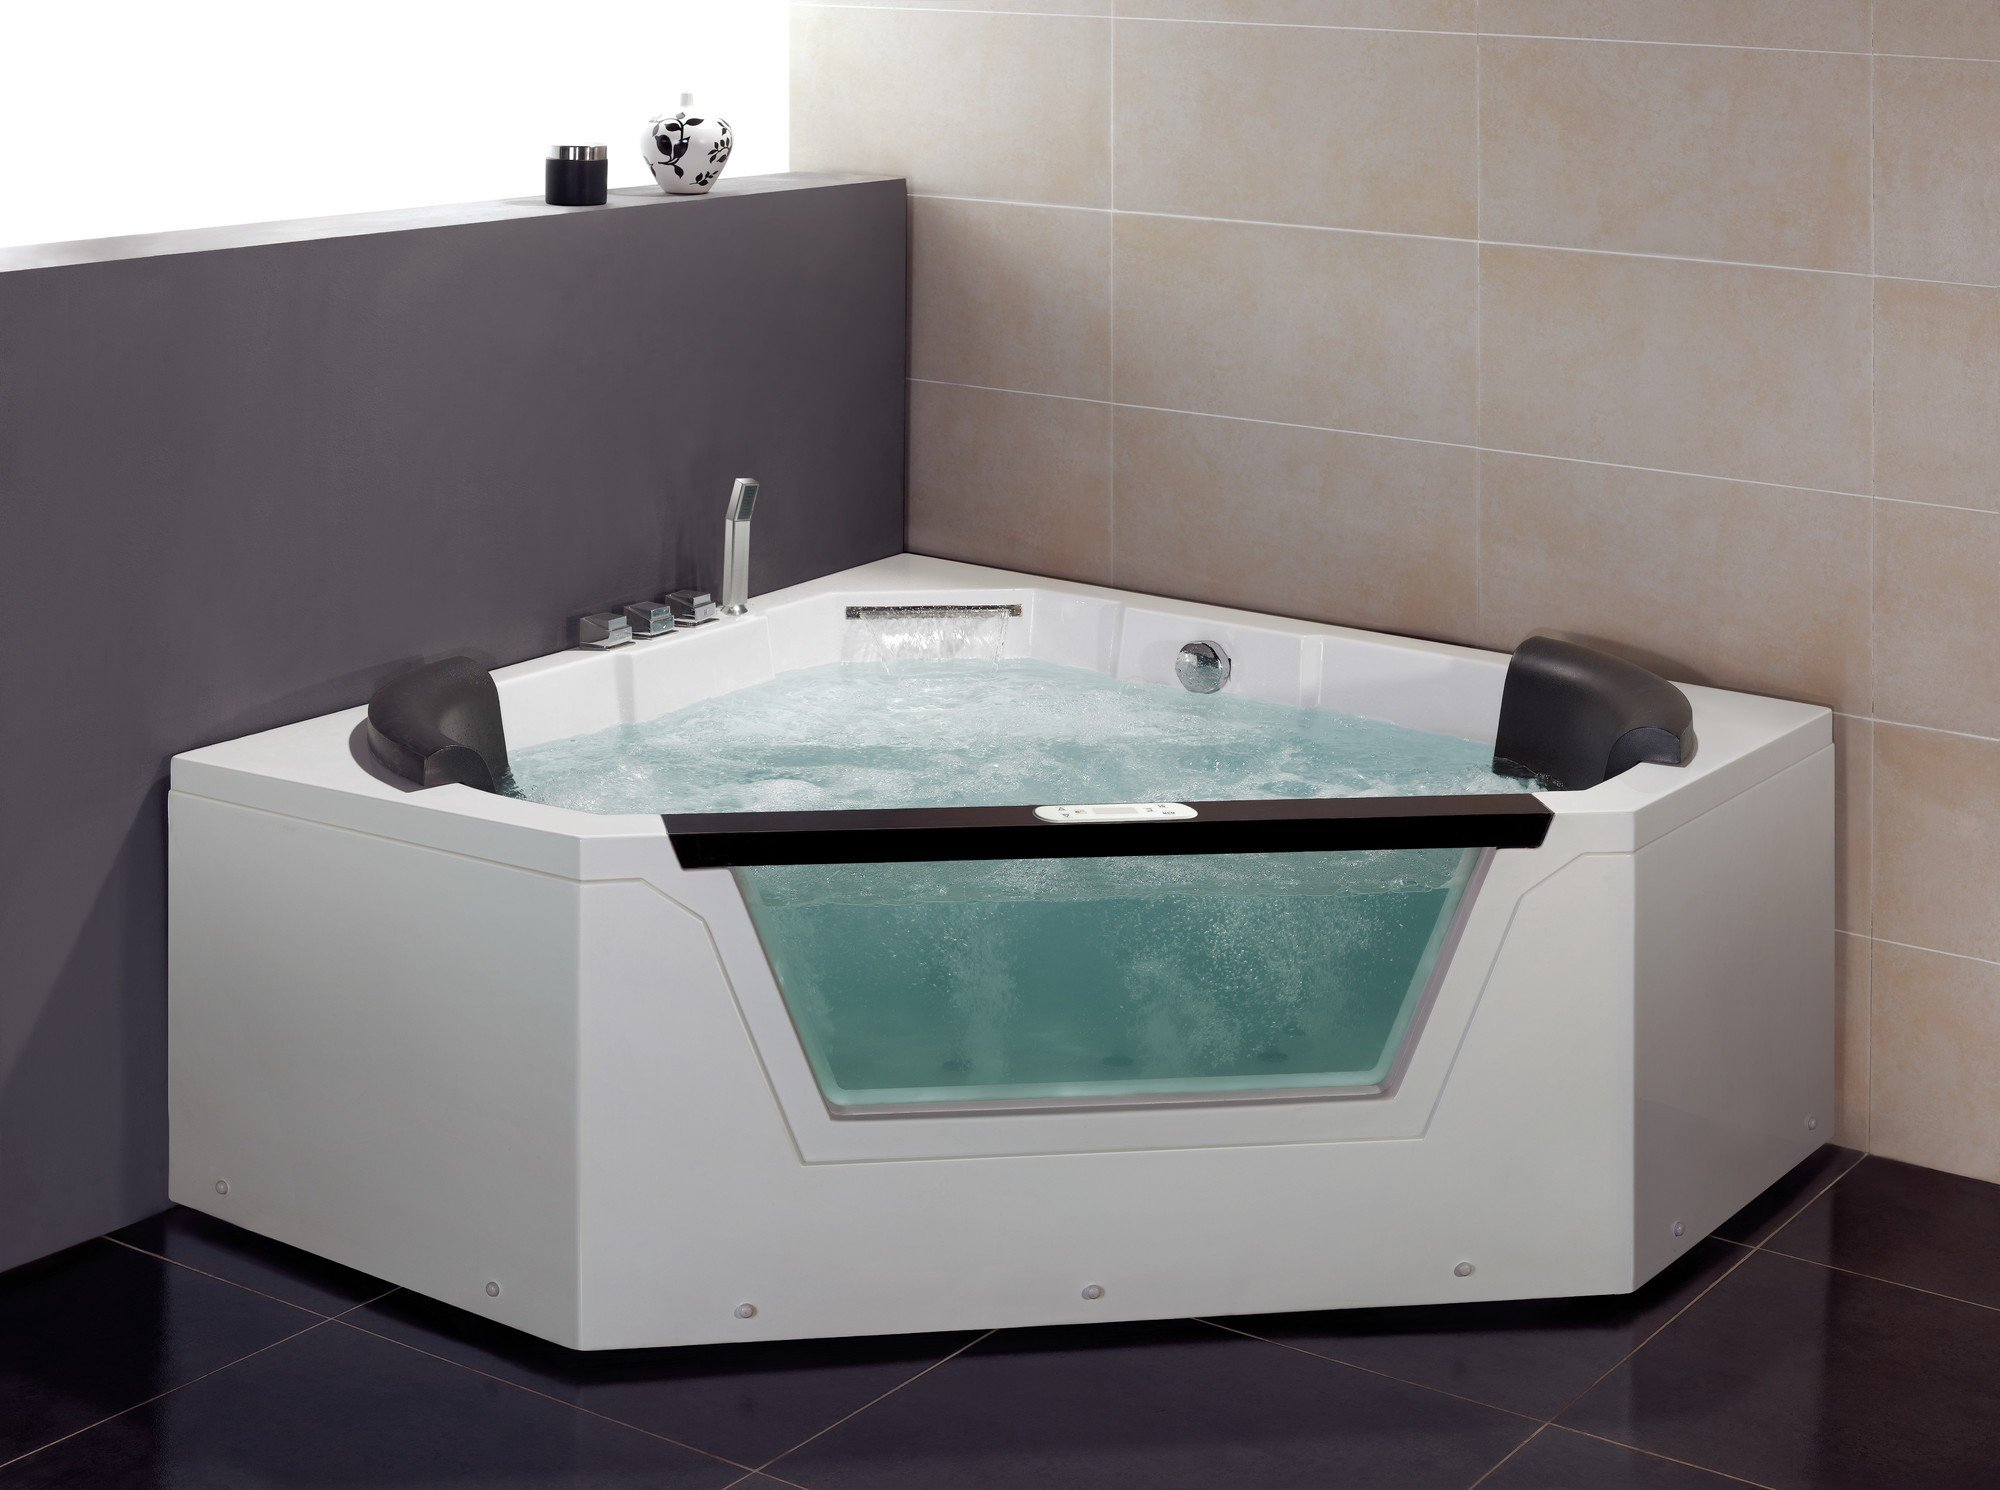 5 Most Relaxing Whirlpool Tubs To Give You An Unforgettable Bubble Bath